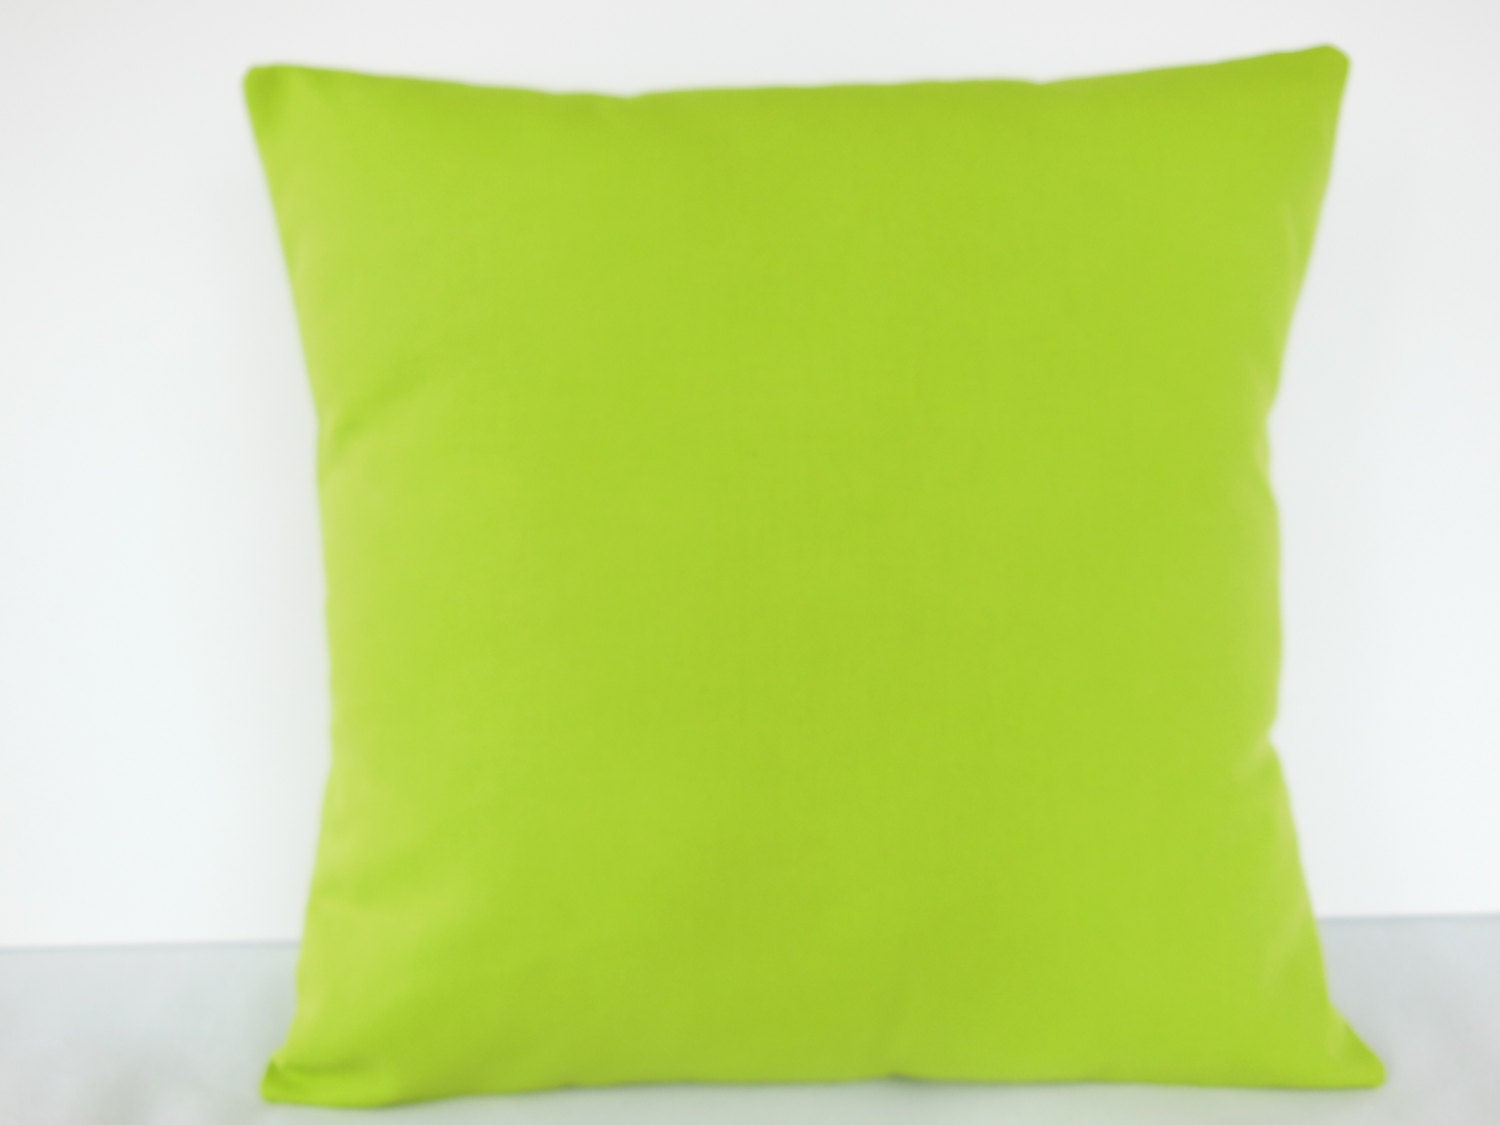 Throw Pillow Lime Green : Lime Green Throw Pillow COVER Solid Lime Couch Pillow Bedding